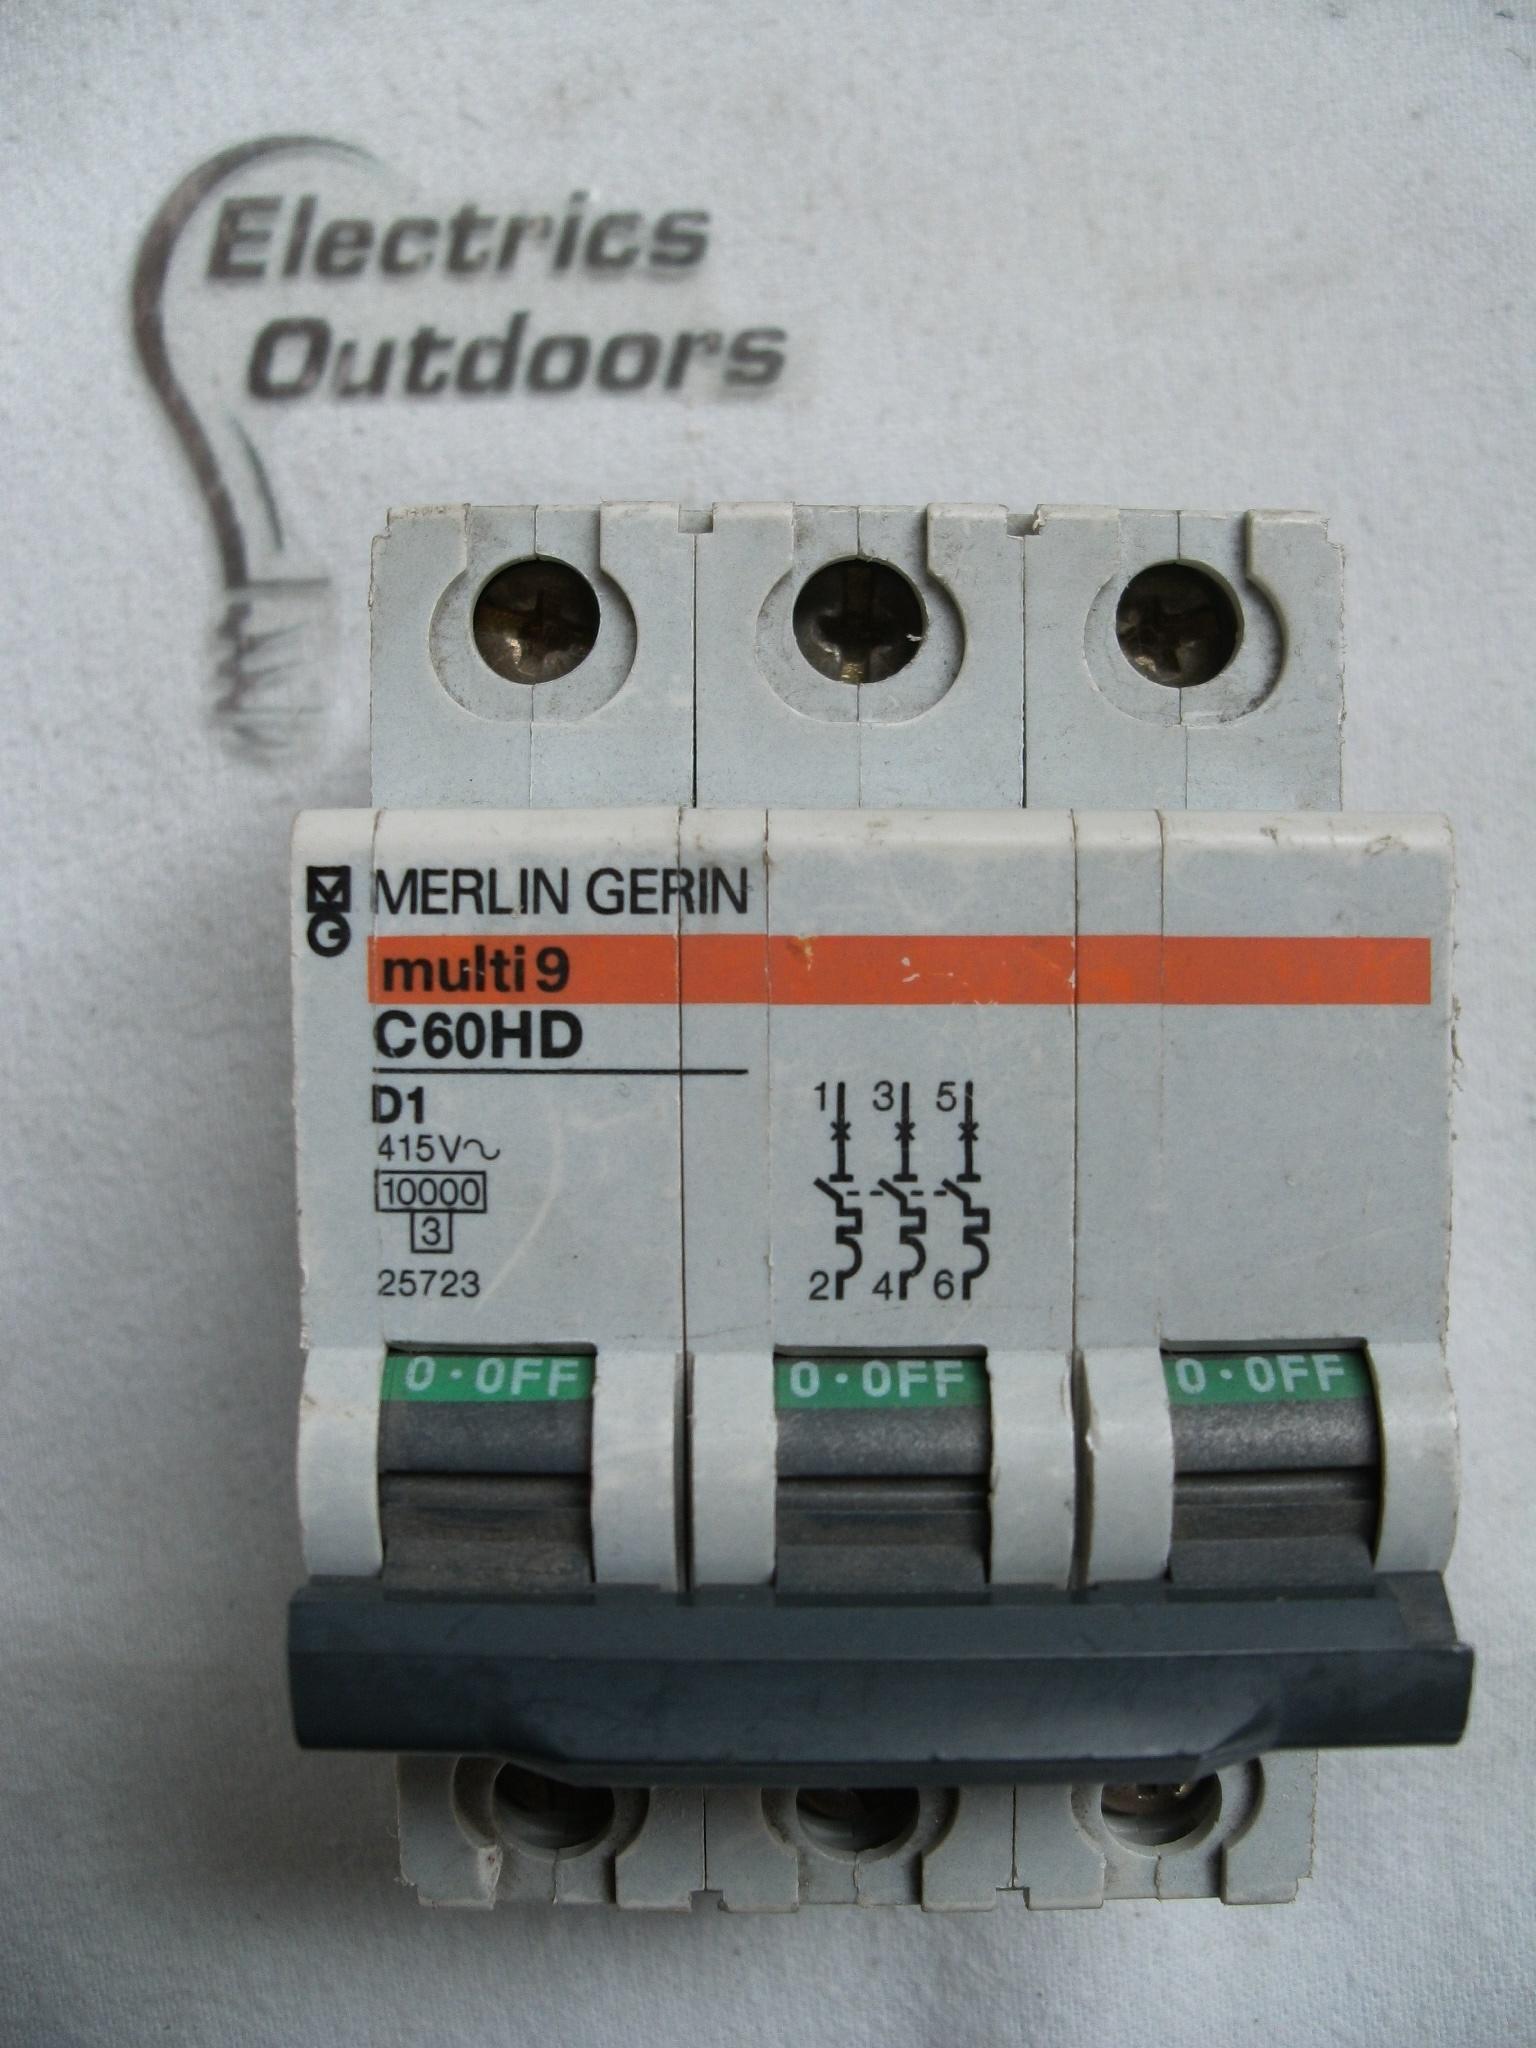 MERLIN GERIN 1 AMP TYPE D 10 kA TRIPLE POLE MCB CIRCUIT BREAKER C60HD 25723 3